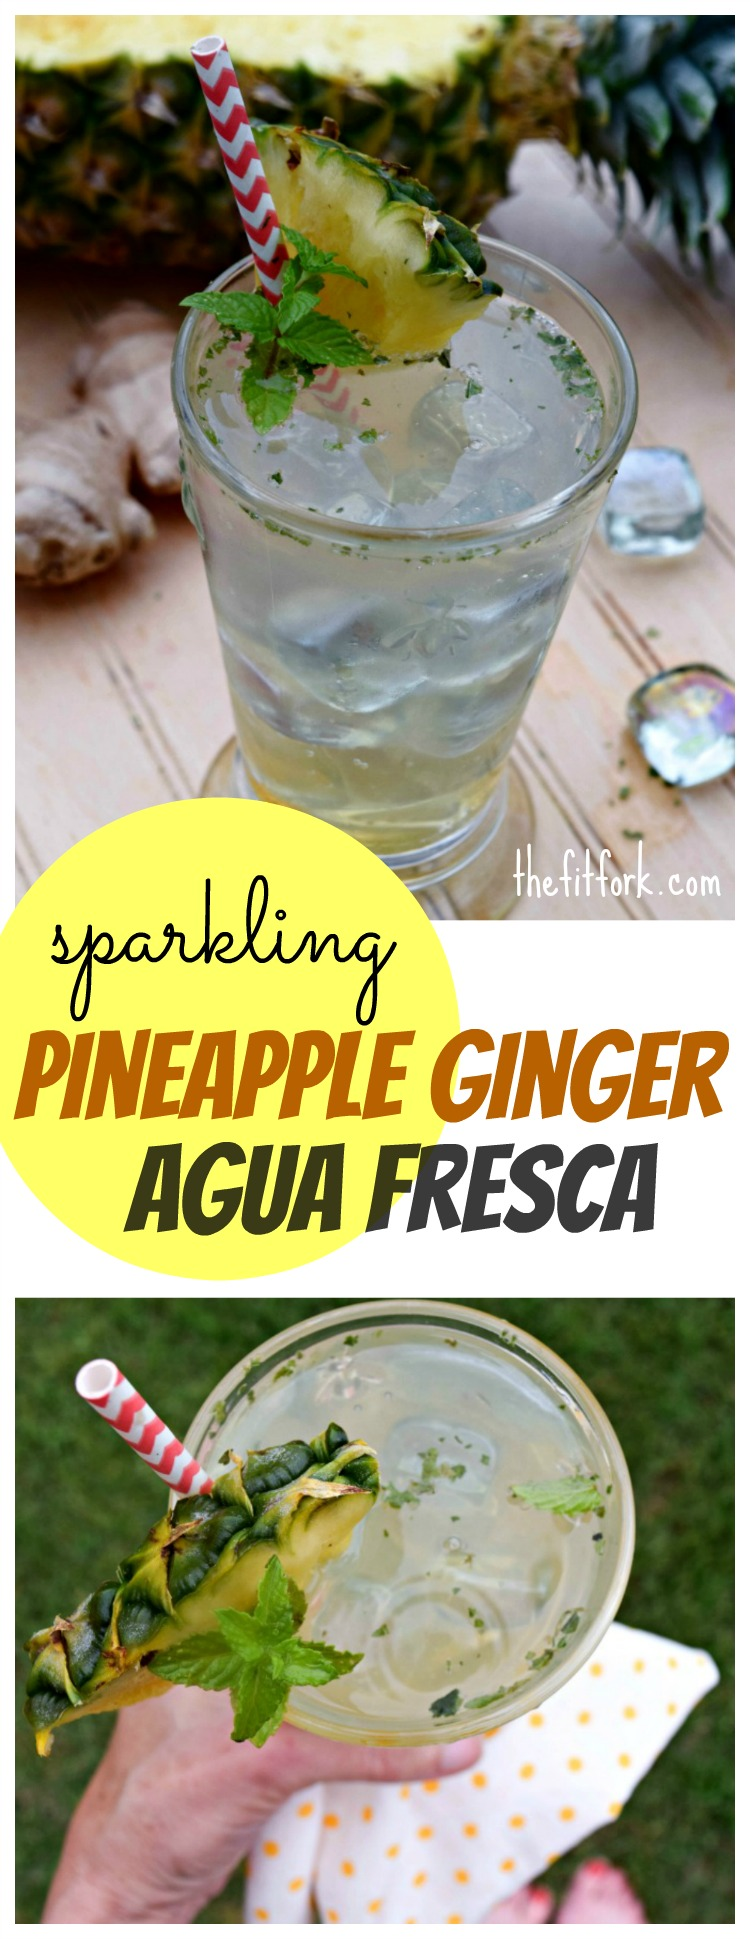 Sparkling Pineapple Ginger Agua Fresca is a very low-calorie option to carbonated beverages and makes a fun, festive mocktail for your next celebration or post-workout recovery.